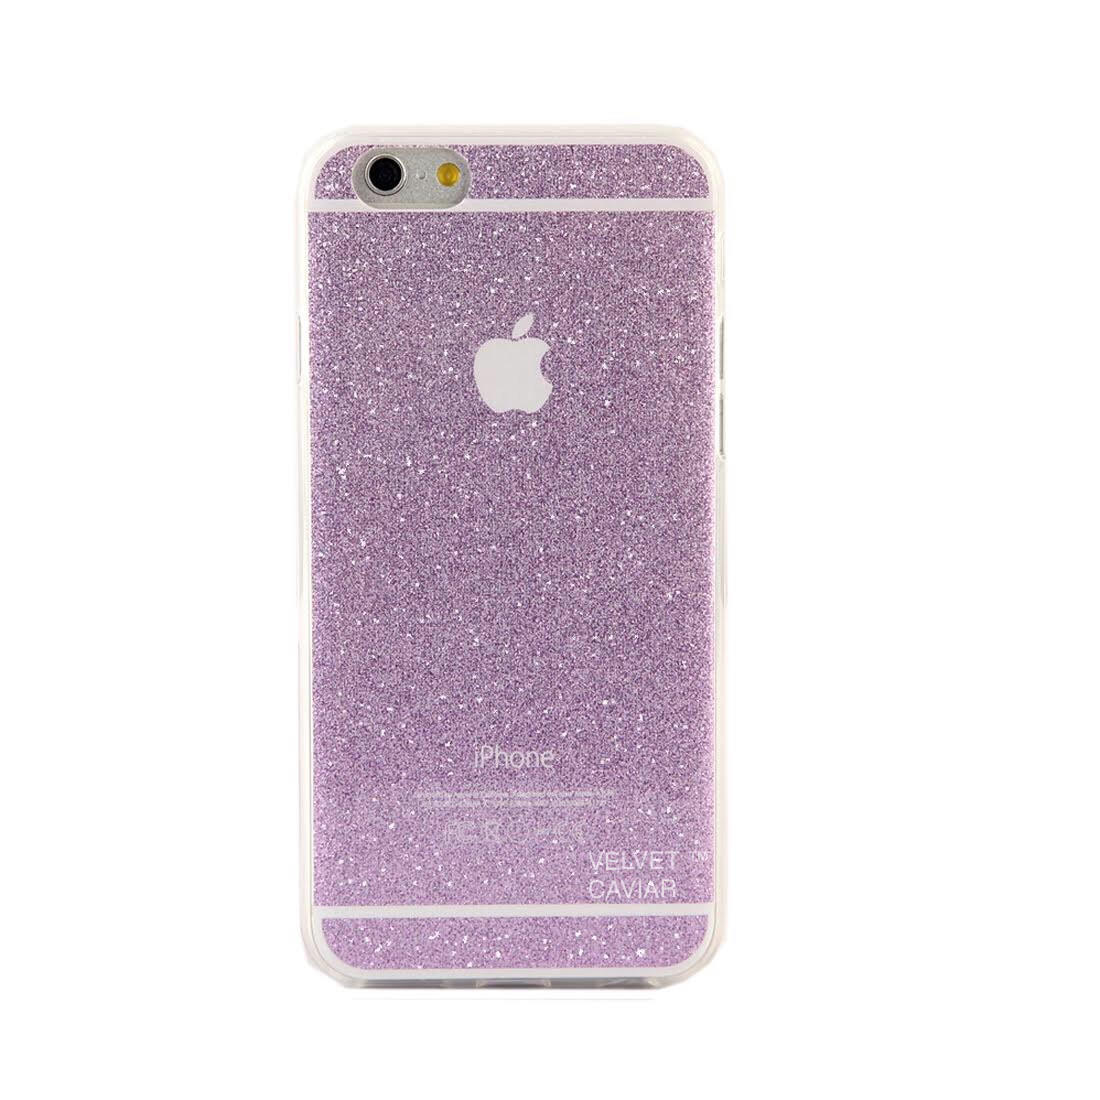 PURPLE GLITTER IPHONE CASE from Velvet Caviar  6005f76eb